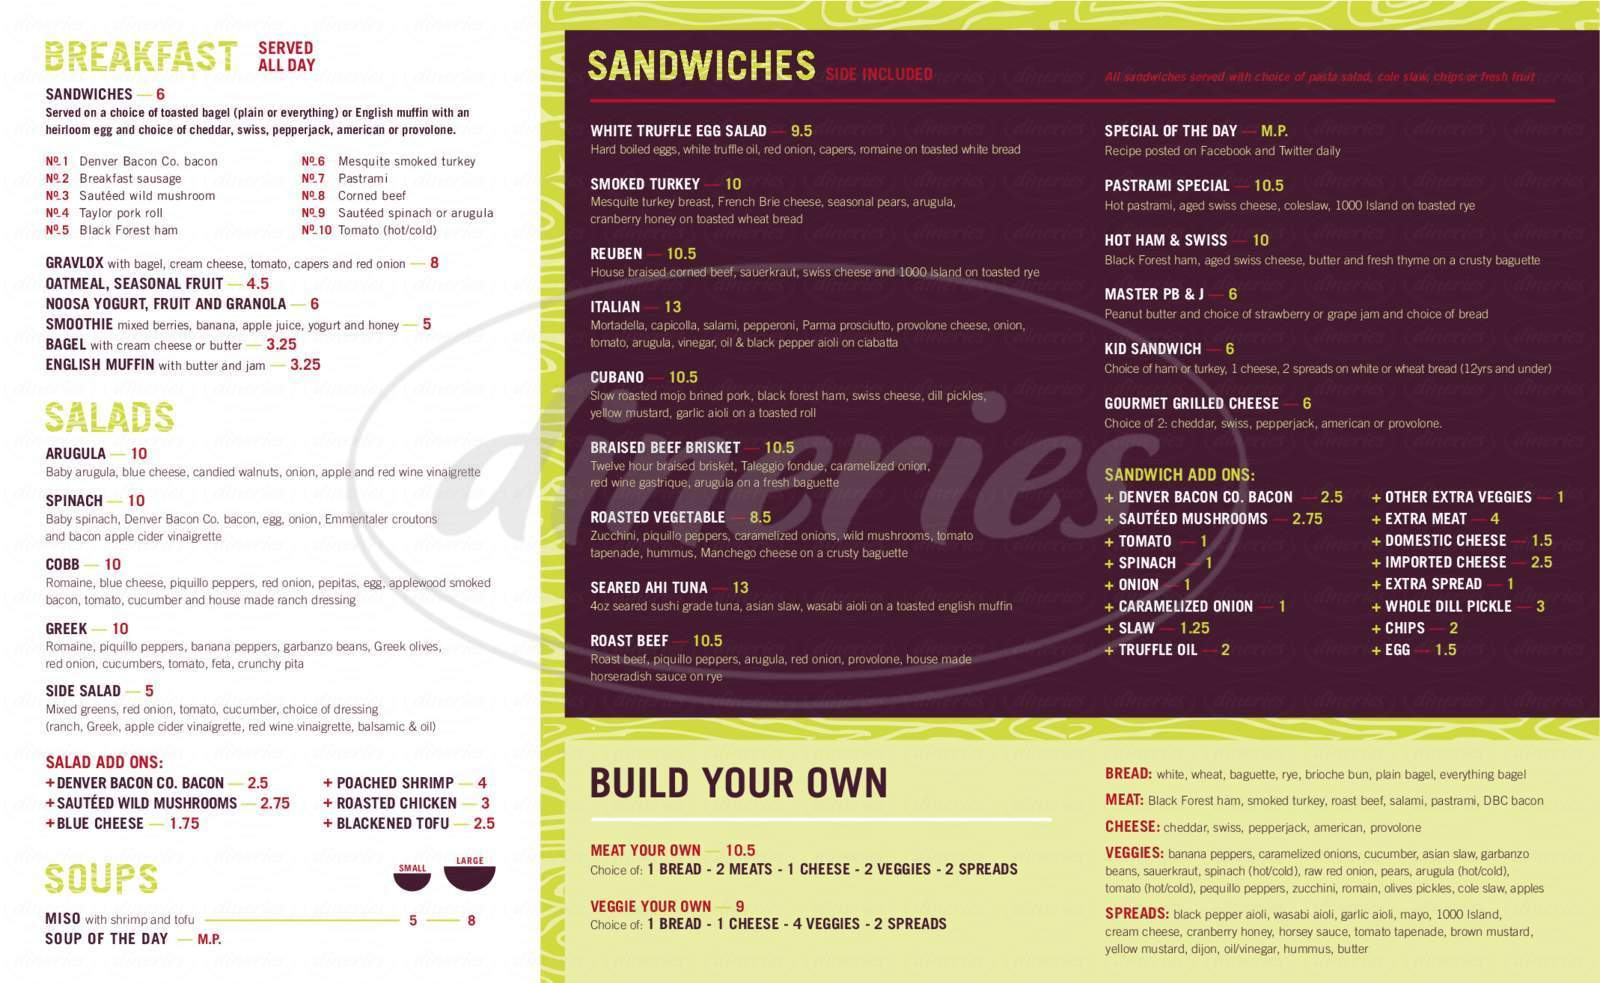 menu for Masterpiece Delicatessen